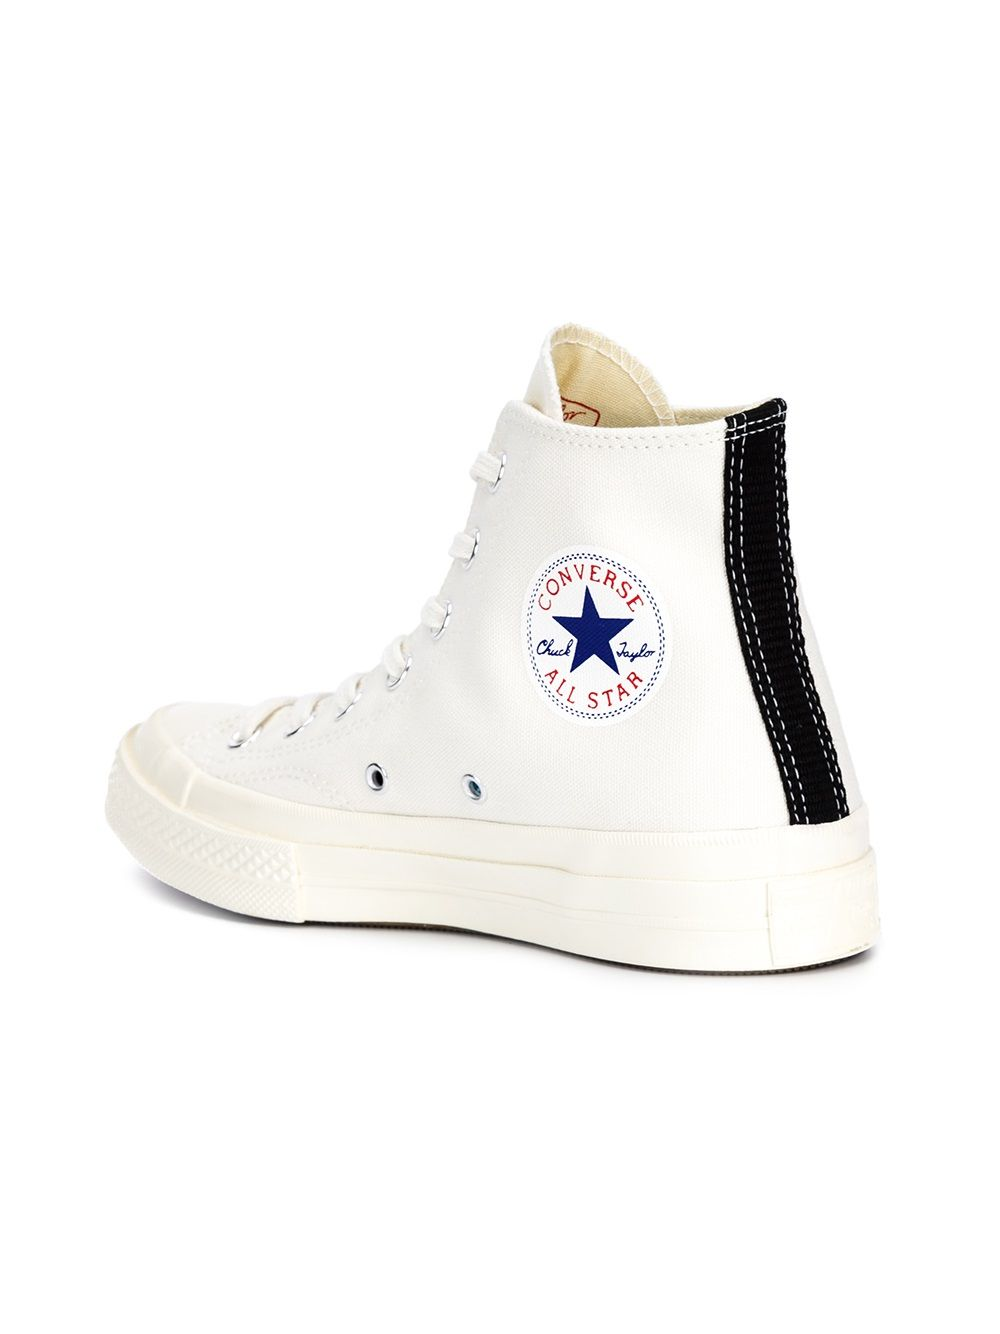 Comme Des Garçons Play sneakers play uomo COMME DES GARÇONS PLAY X CONVERSE | Sneakers | P1K1122